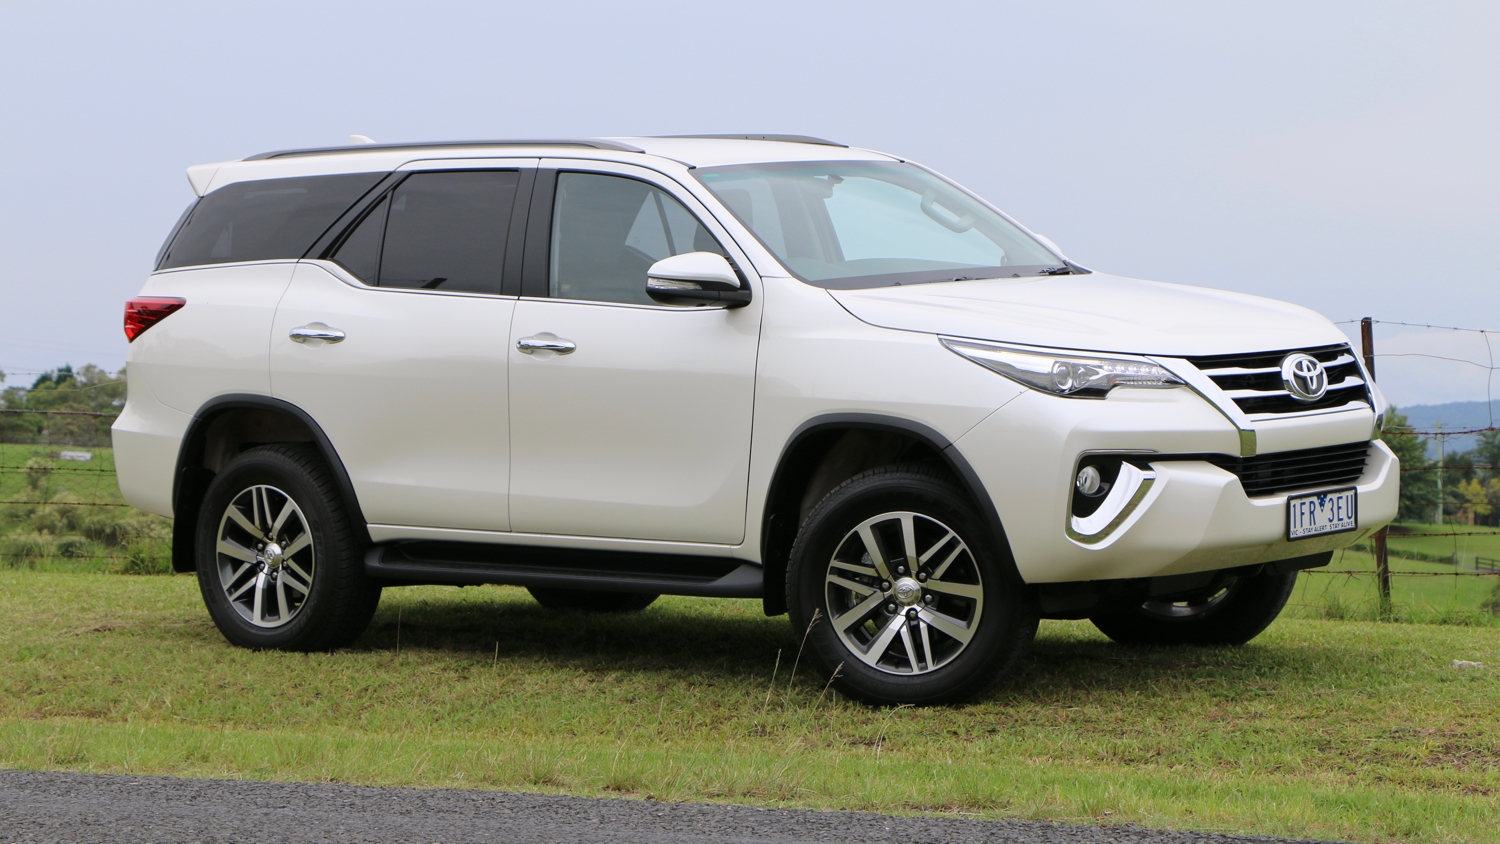 2016 Toyota Fortuner Crusade - Chasing Cars